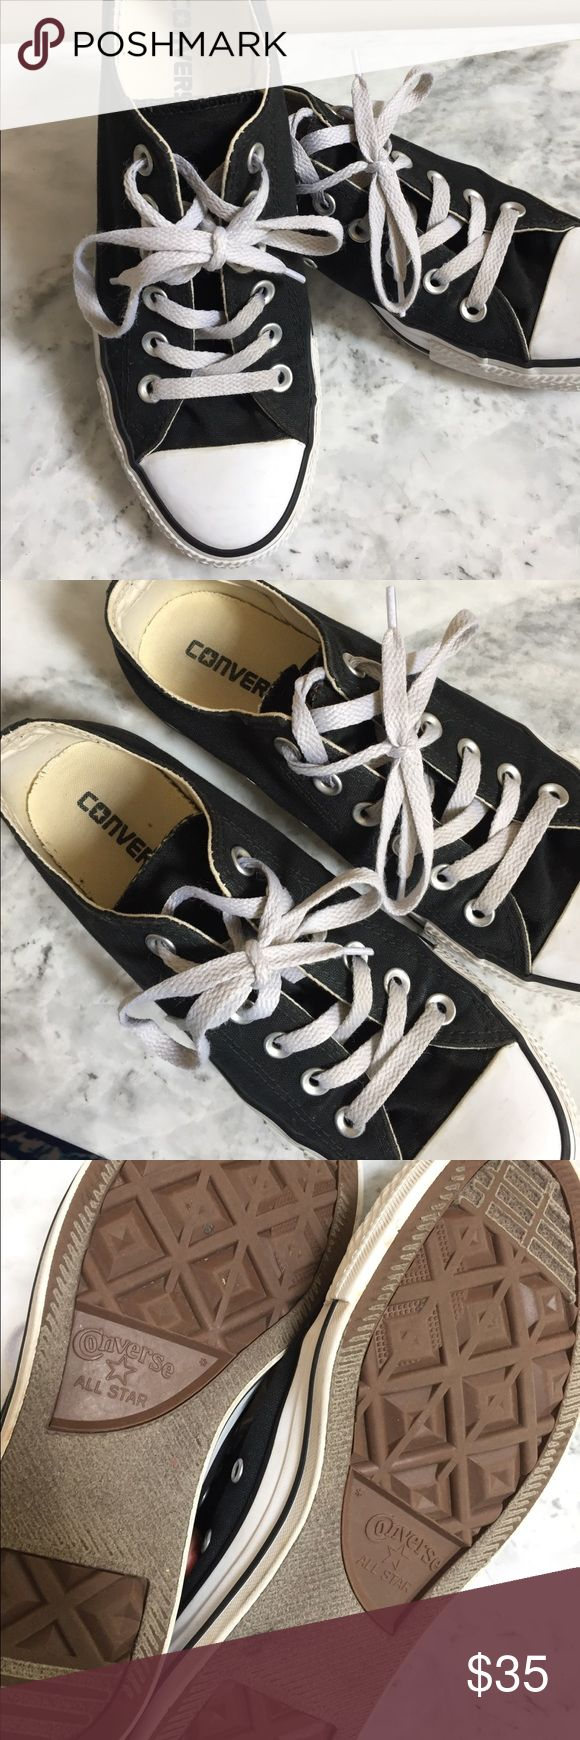 Black converse low top shoes women's size 8 These black low top converse women's shoes have been very gently worn. Converse Shoes Athletic Shoes